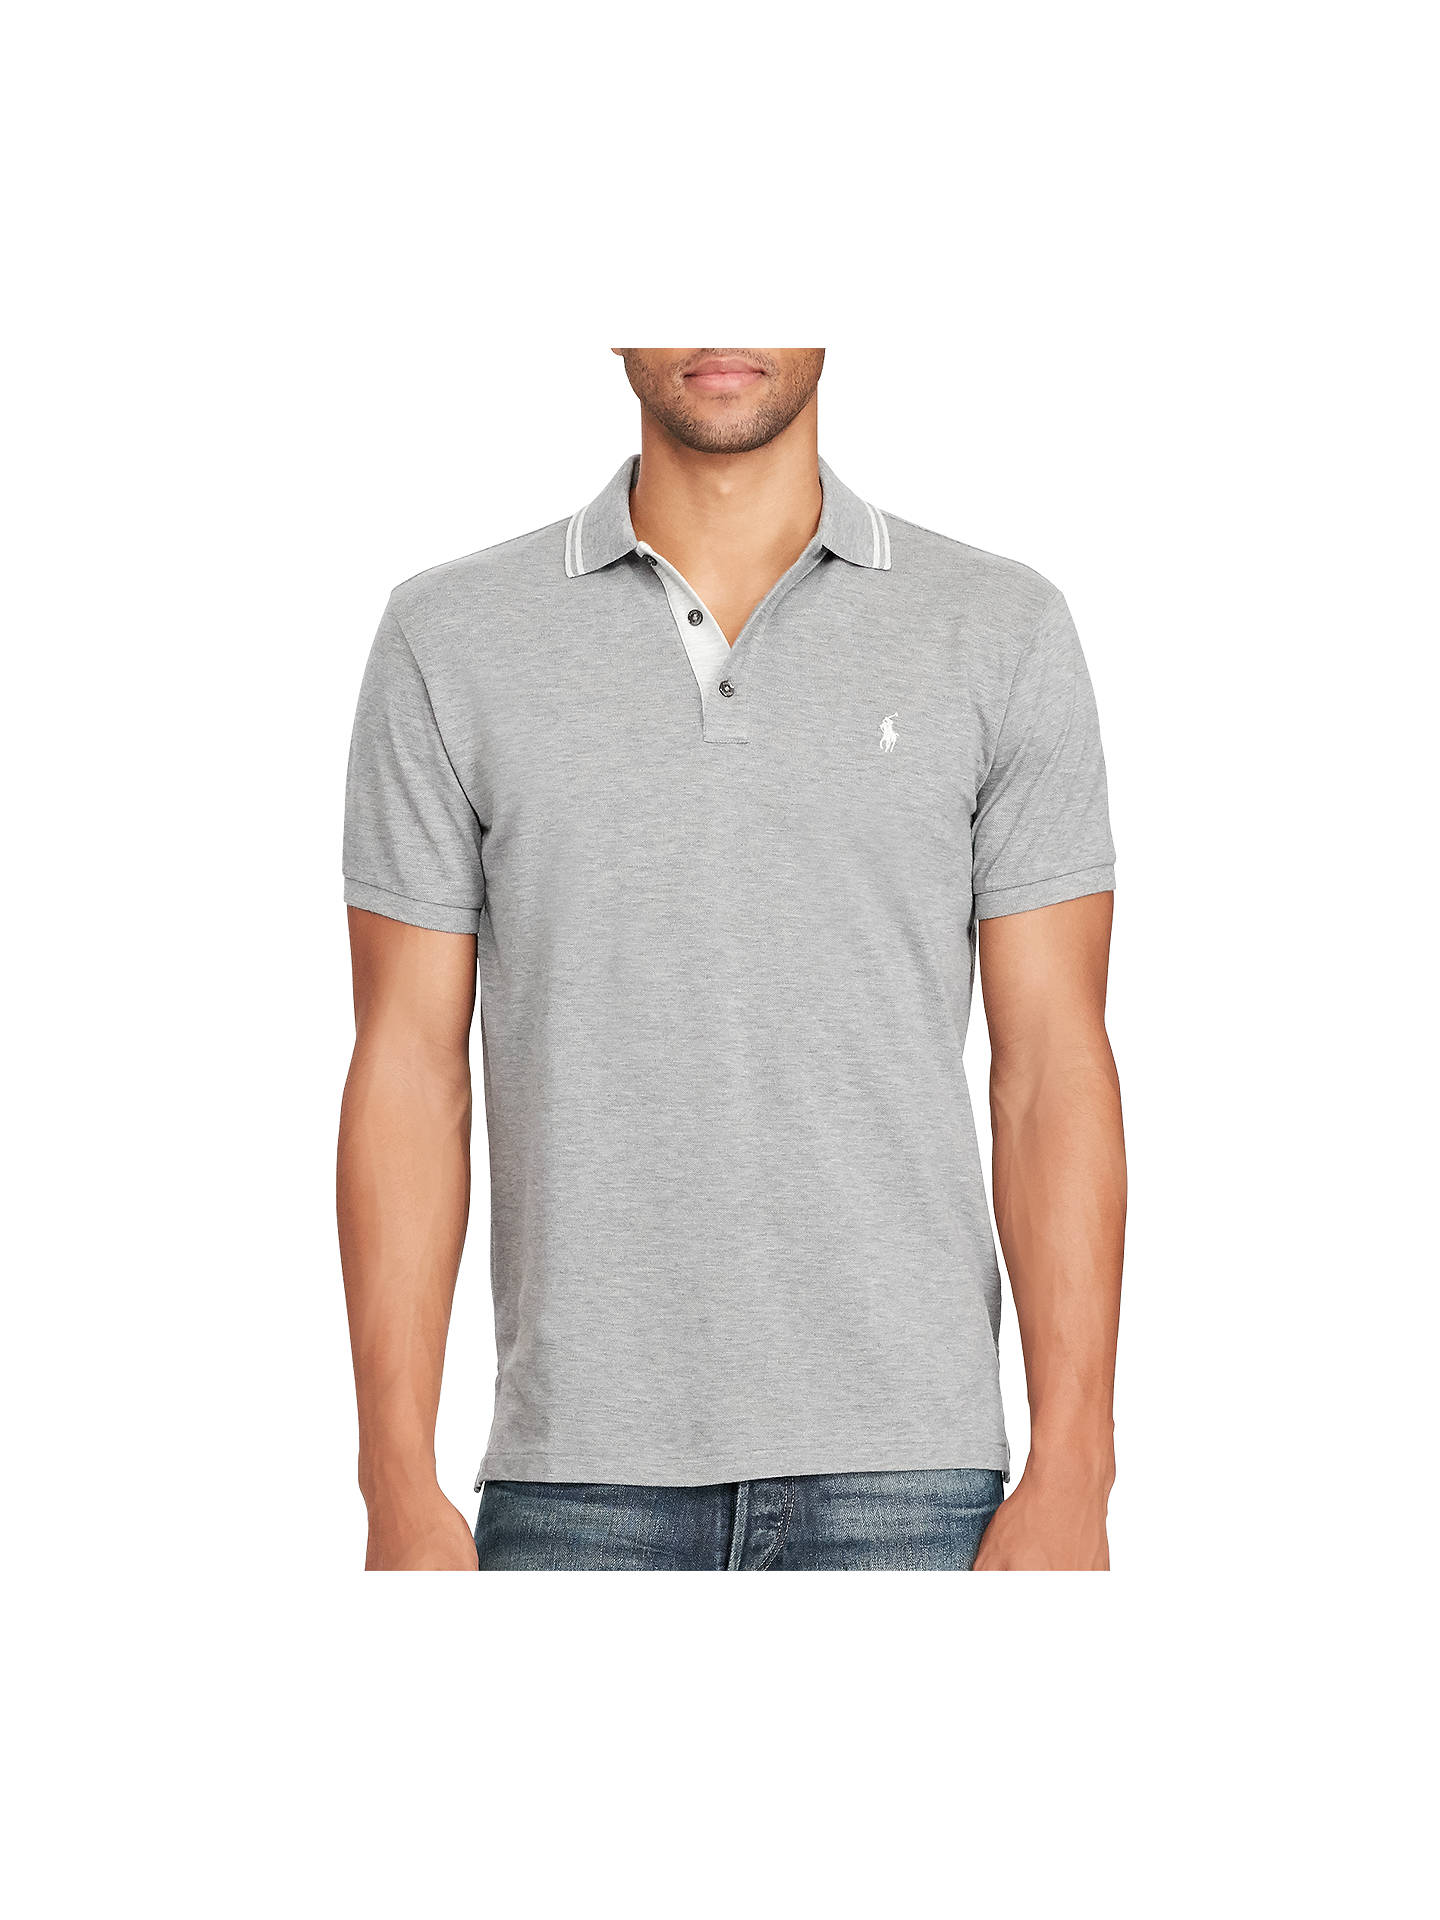 b70c96058 Polo Ralph Lauren Custom-Fit Cotton Mesh Polo Shirt at John Lewis ...